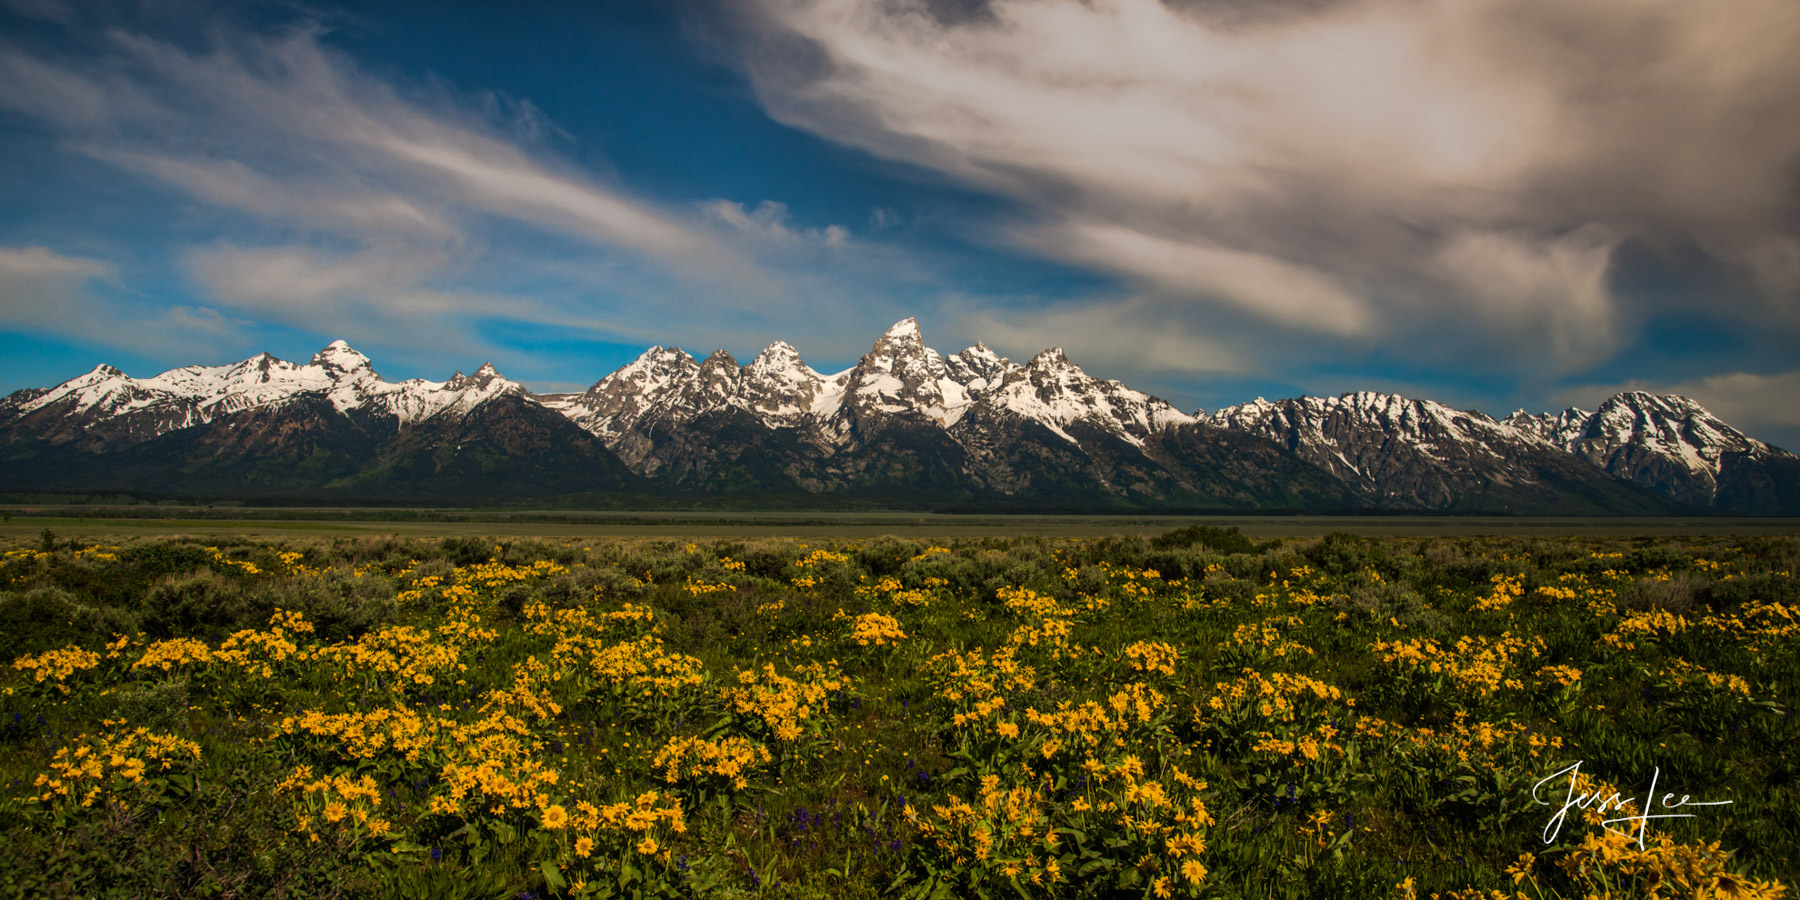 Limited Edition of 50 Exclusive high-resolution Museum Quality Fine Art Prints of Jackson Hole Wyoming carpeted with Balsam Root...